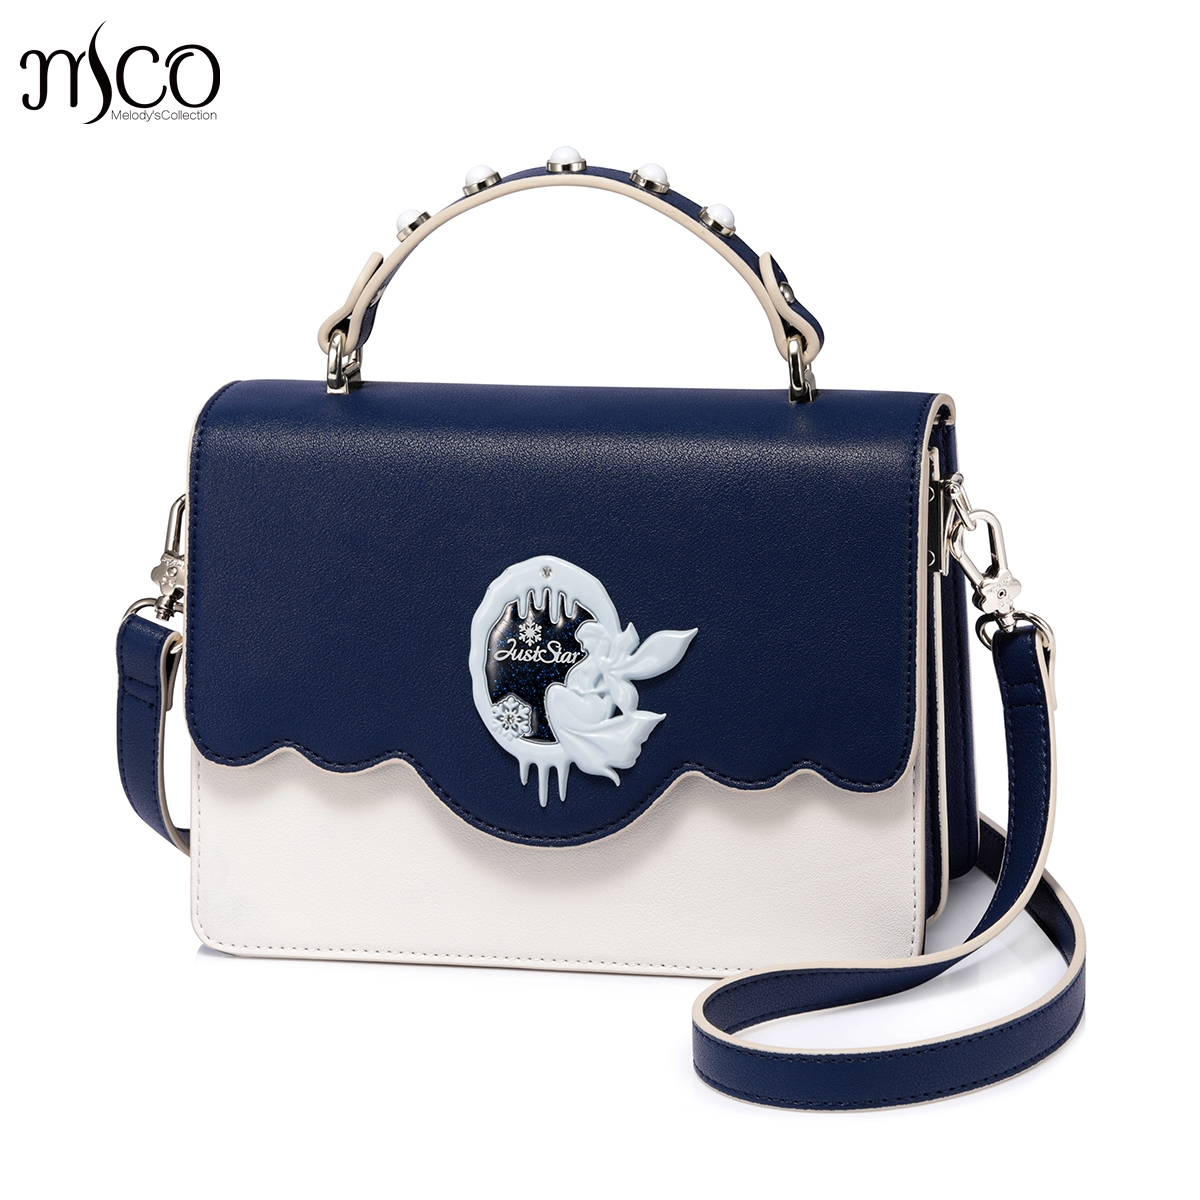 Brand designer Snow Queen Rivet PU leather luxury handbags women shoulder bags crossbody bags Sac a Main femme de marque new 2017 fashion women pu leather shoulder bags ladies patent crossbody bag brand luxury handbags women bags designer sac a main